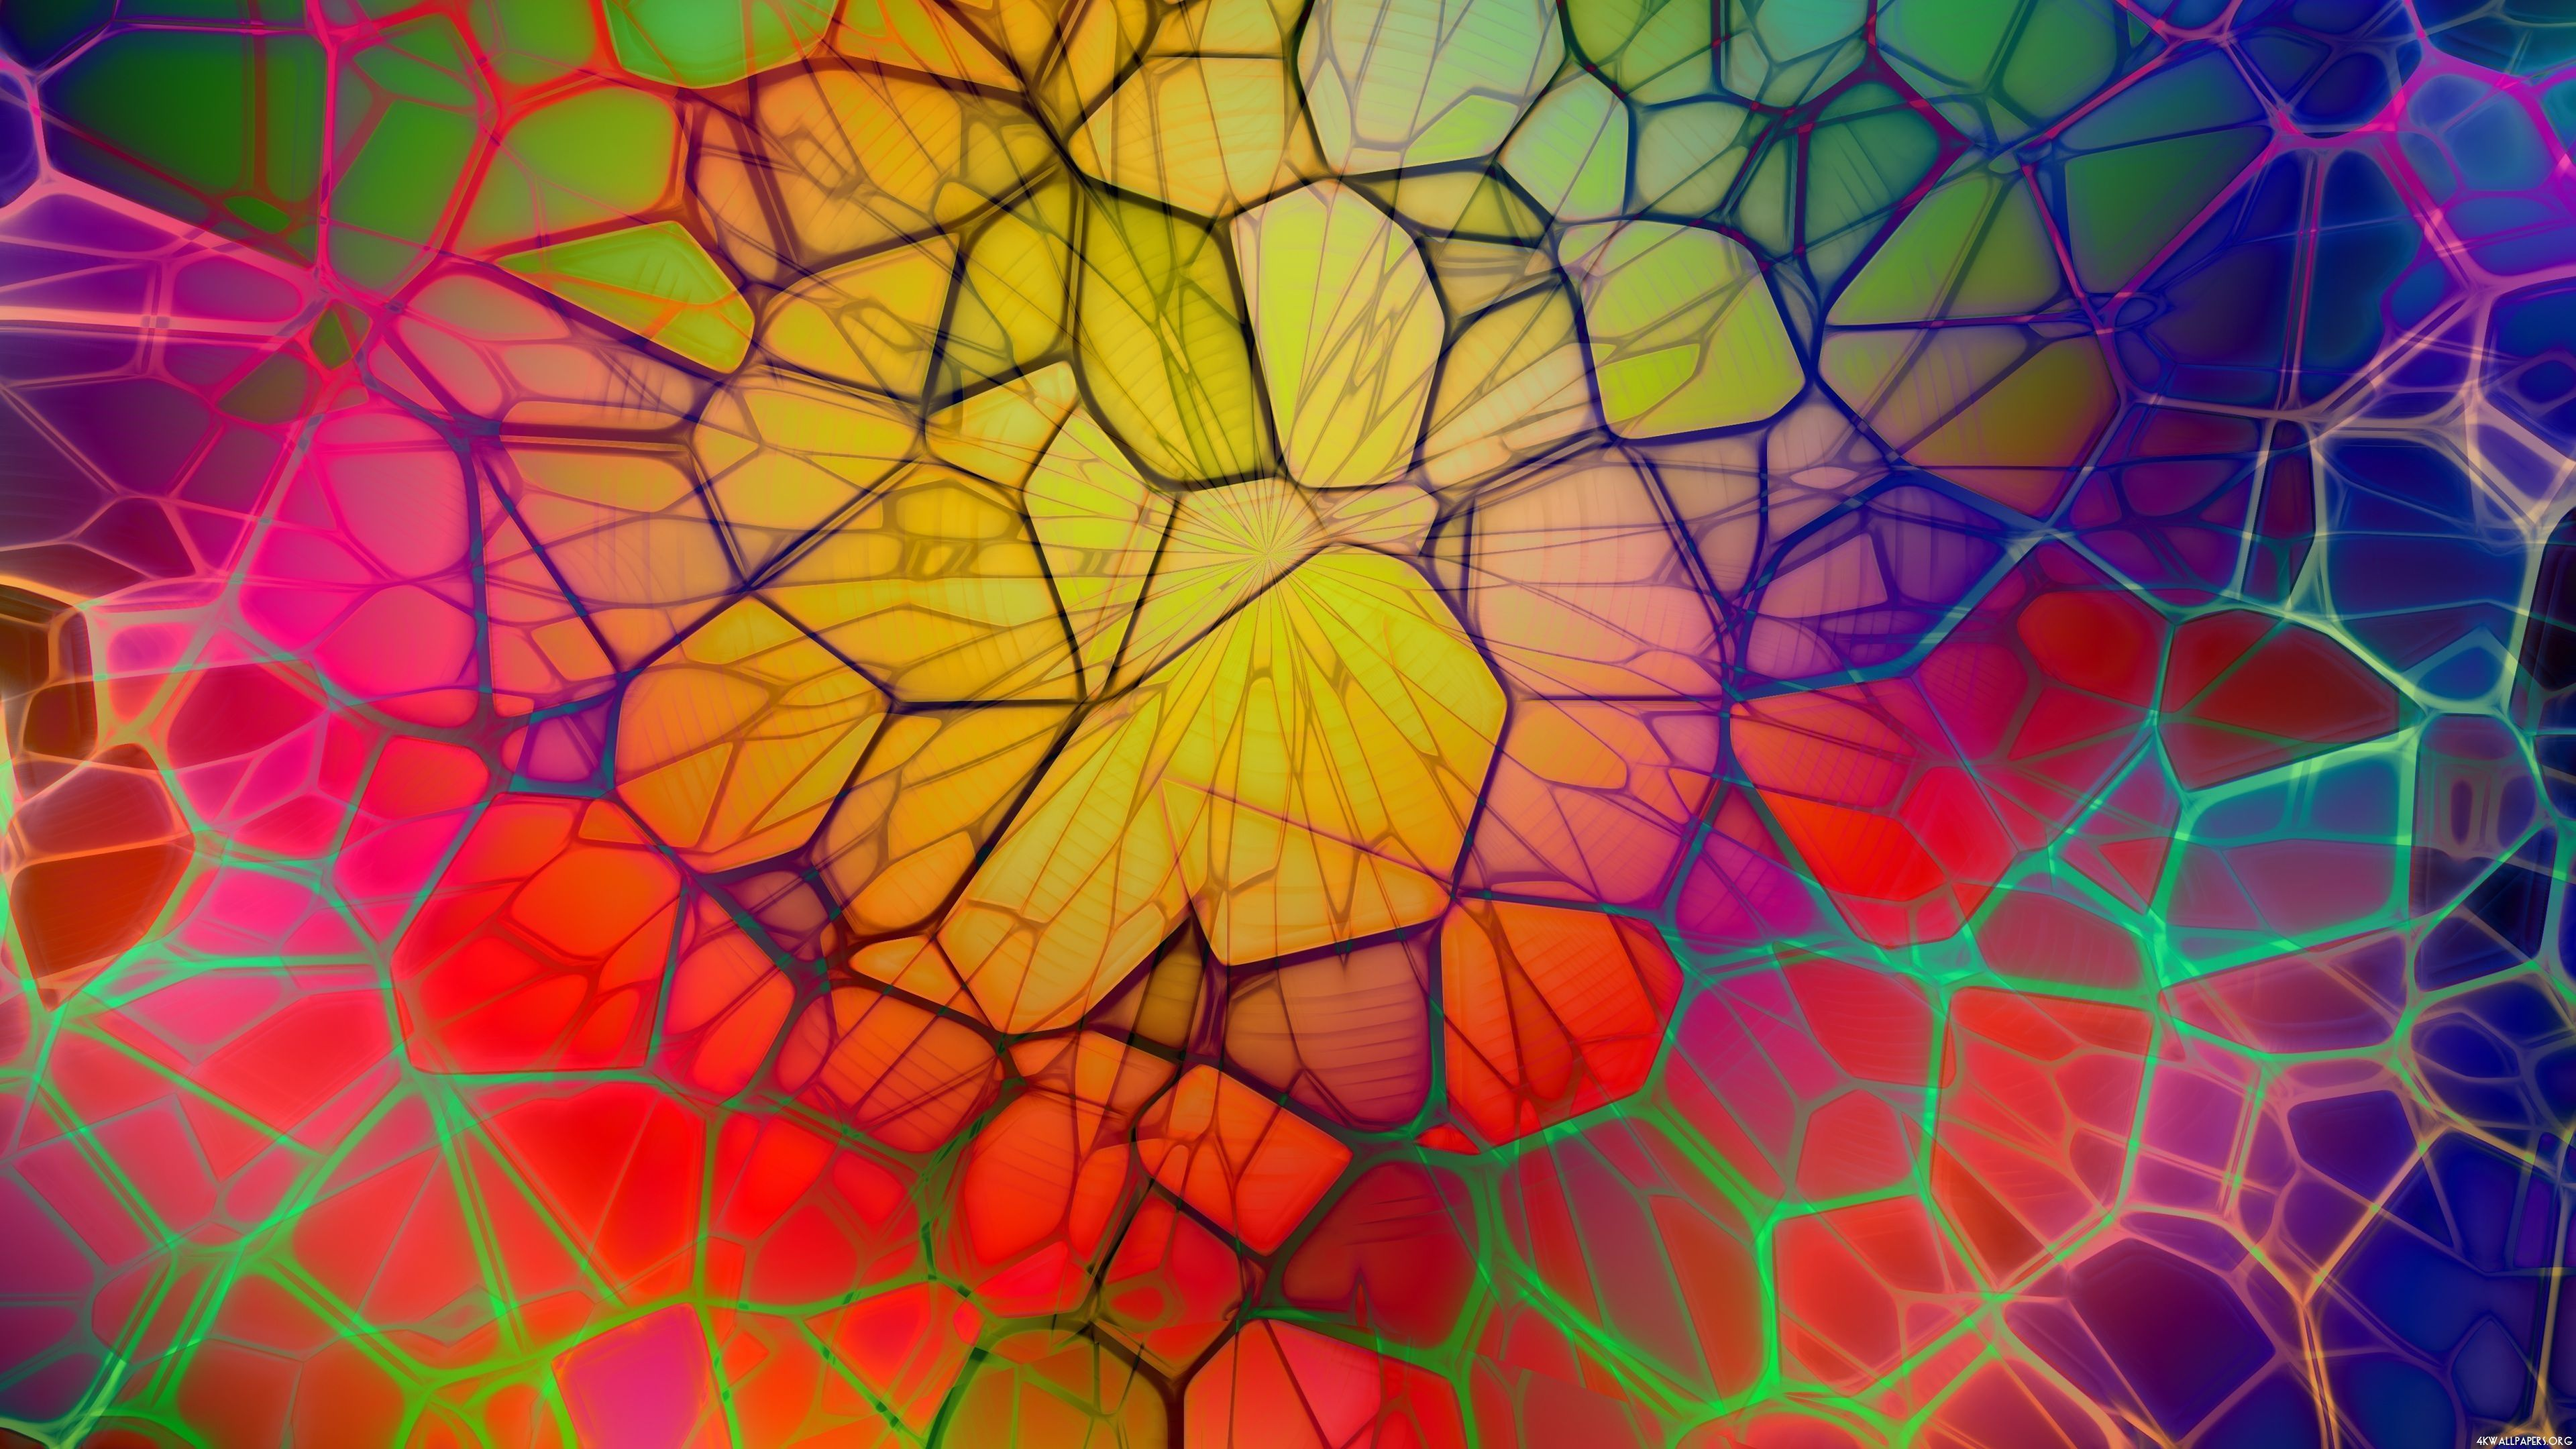 4k ultra hd abstract wallpapers top free 4k ultra hd abstract backgrounds wallpaperaccess - 4k colorful wallpaper ...